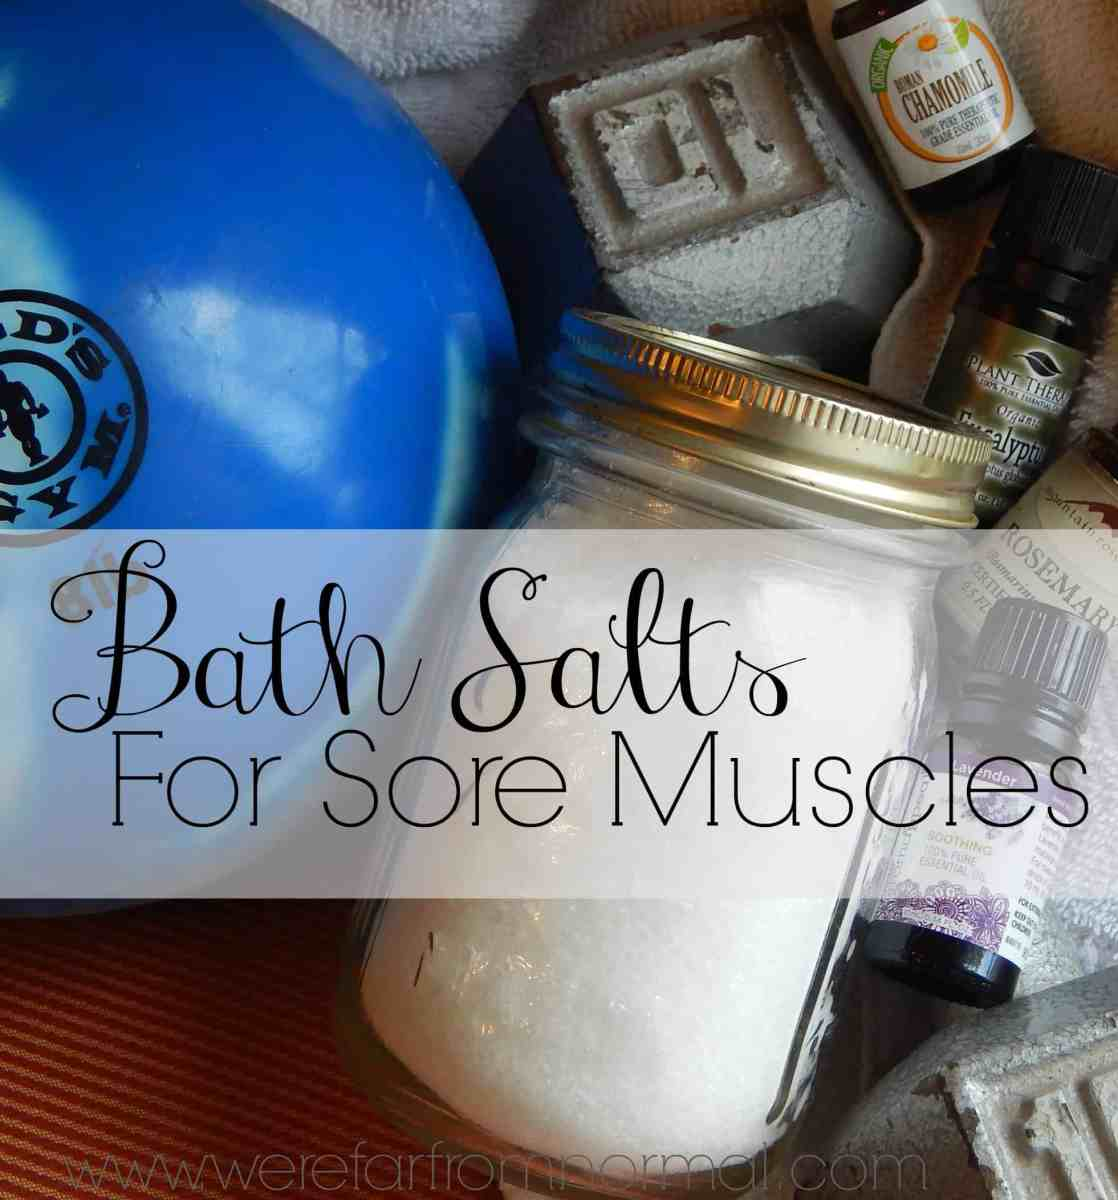 Bath Salt Recipe for Sore Muscles